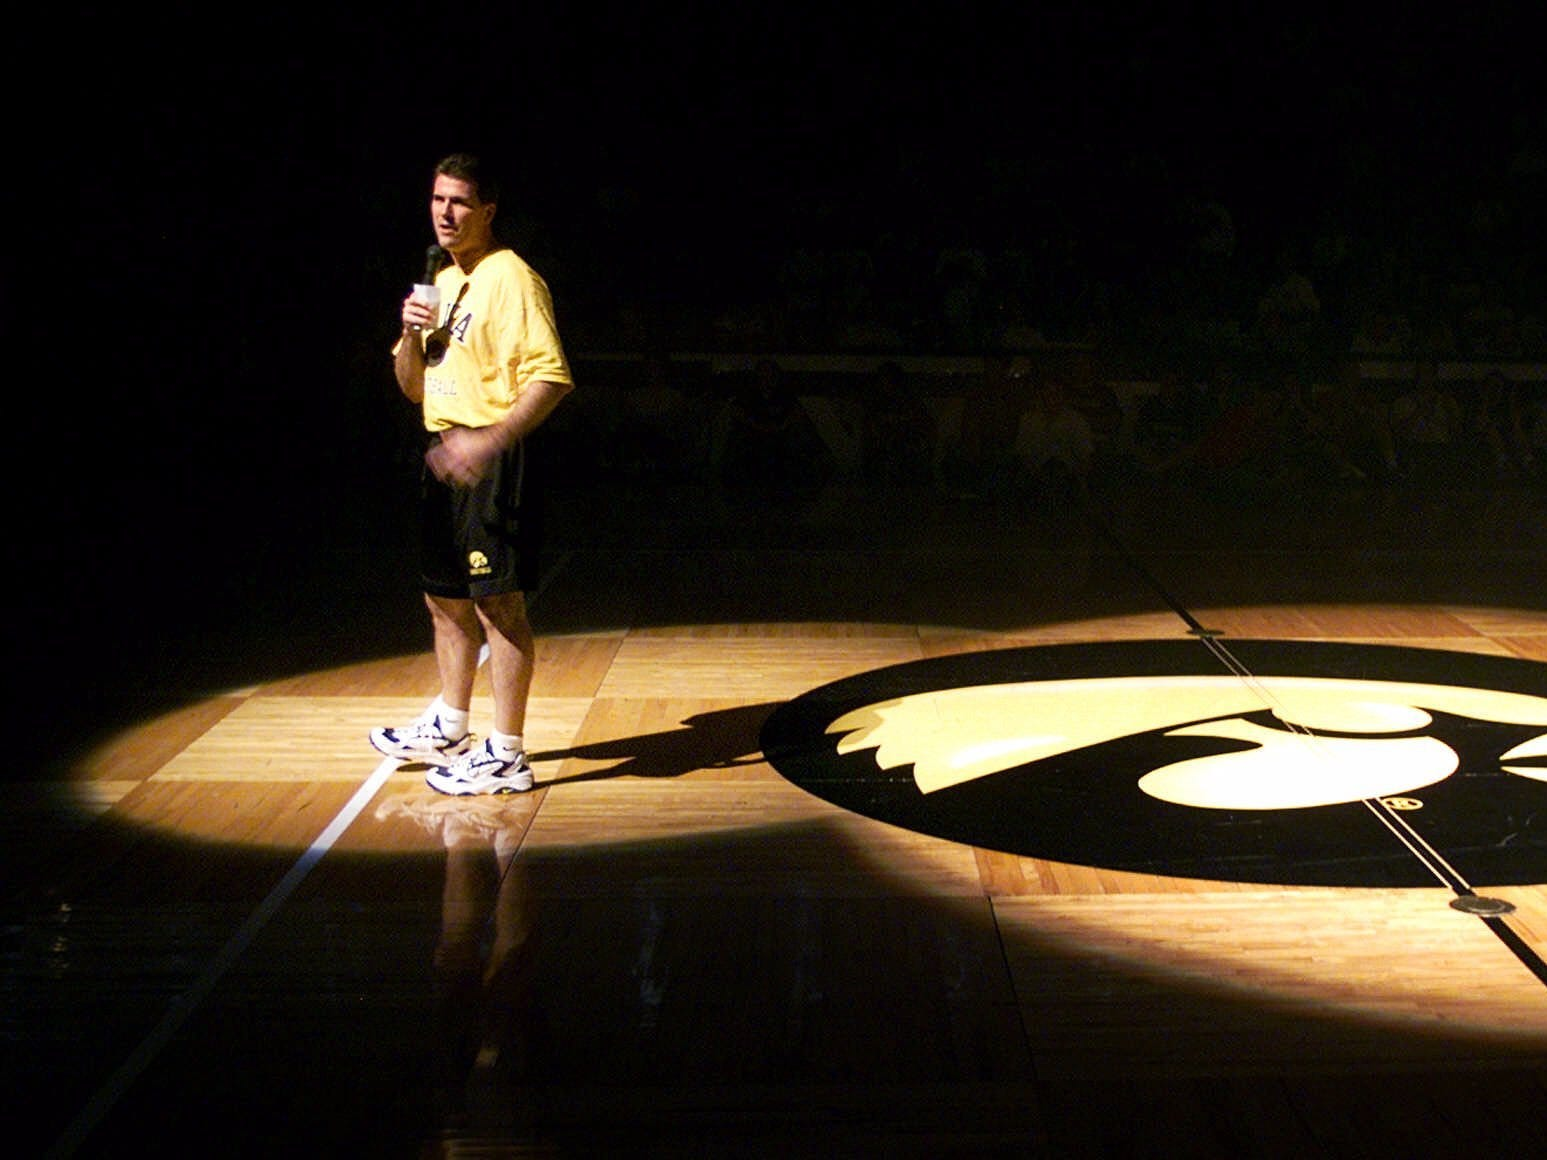 University of Iowa basketball coach Steve Alford speaks during his team's Game Night festivities on Oct. 16, 1999, in Iowa City. Alford, who was starting his first season at Iowa, held the event as a kickoff to the start of practice.